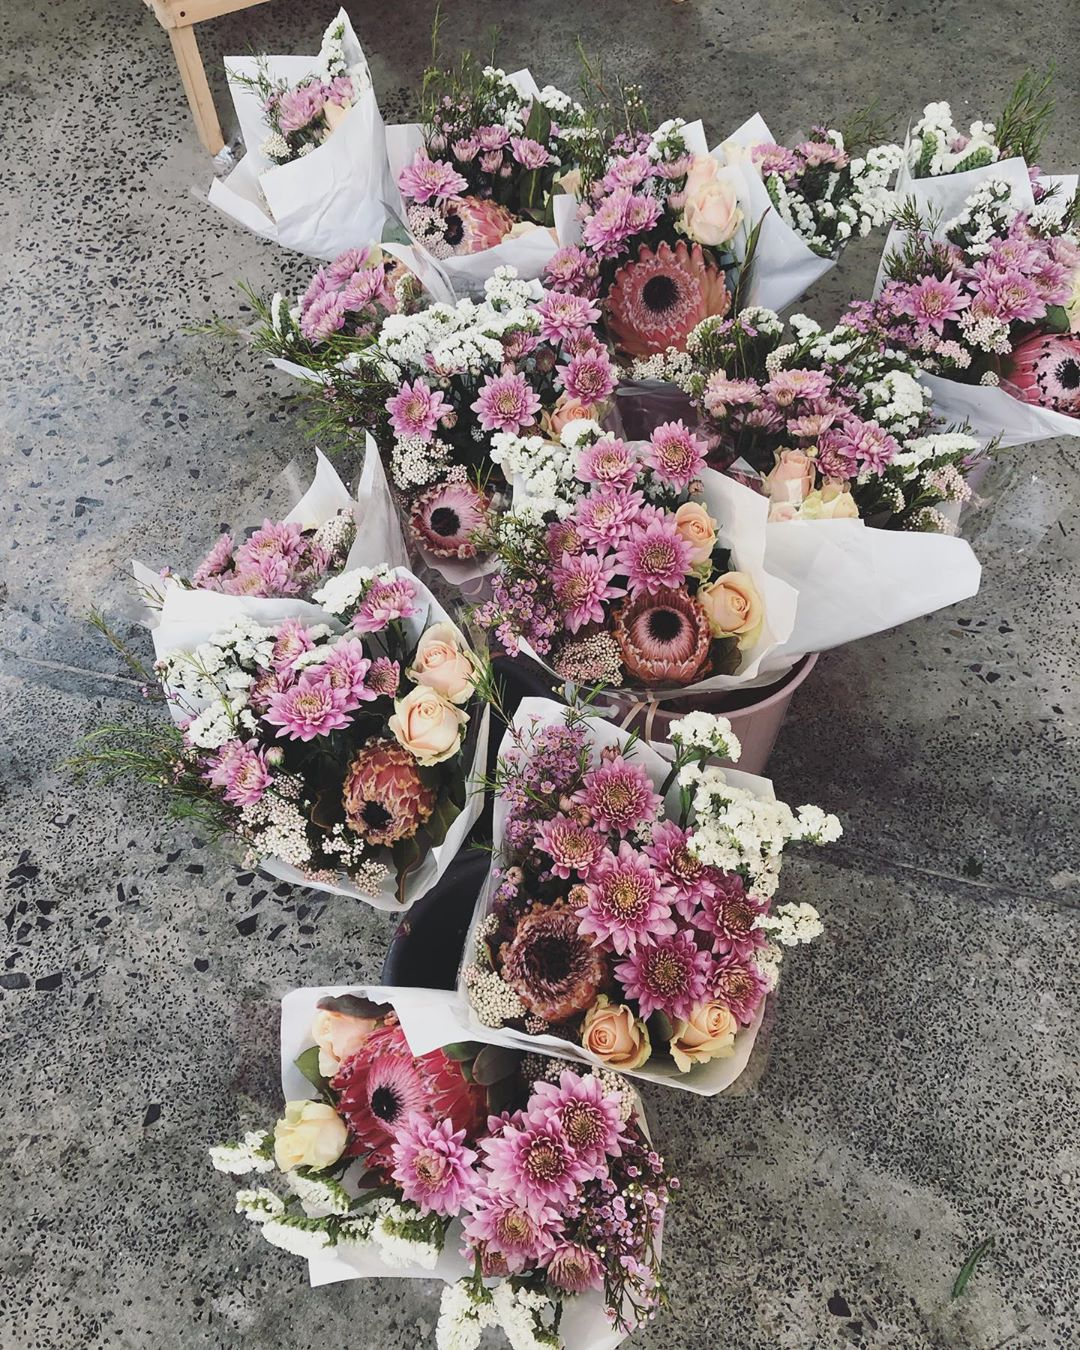 Newlands and Claremont, these are coming your way 💕 . . . . #Petalandpost#capetown#capetownflorist#lovezabuyza#localzadesign#lovelocalza#hellopretty#capetownmag#cylcollective #capetownlikes#supportlocal#posylove#wedding#local#botanical#theprettyblog#gardenday#capetowninfo#handmadeincapetown#madeinsouthafrica#lokalza#durbanville#proudlysouthafrican